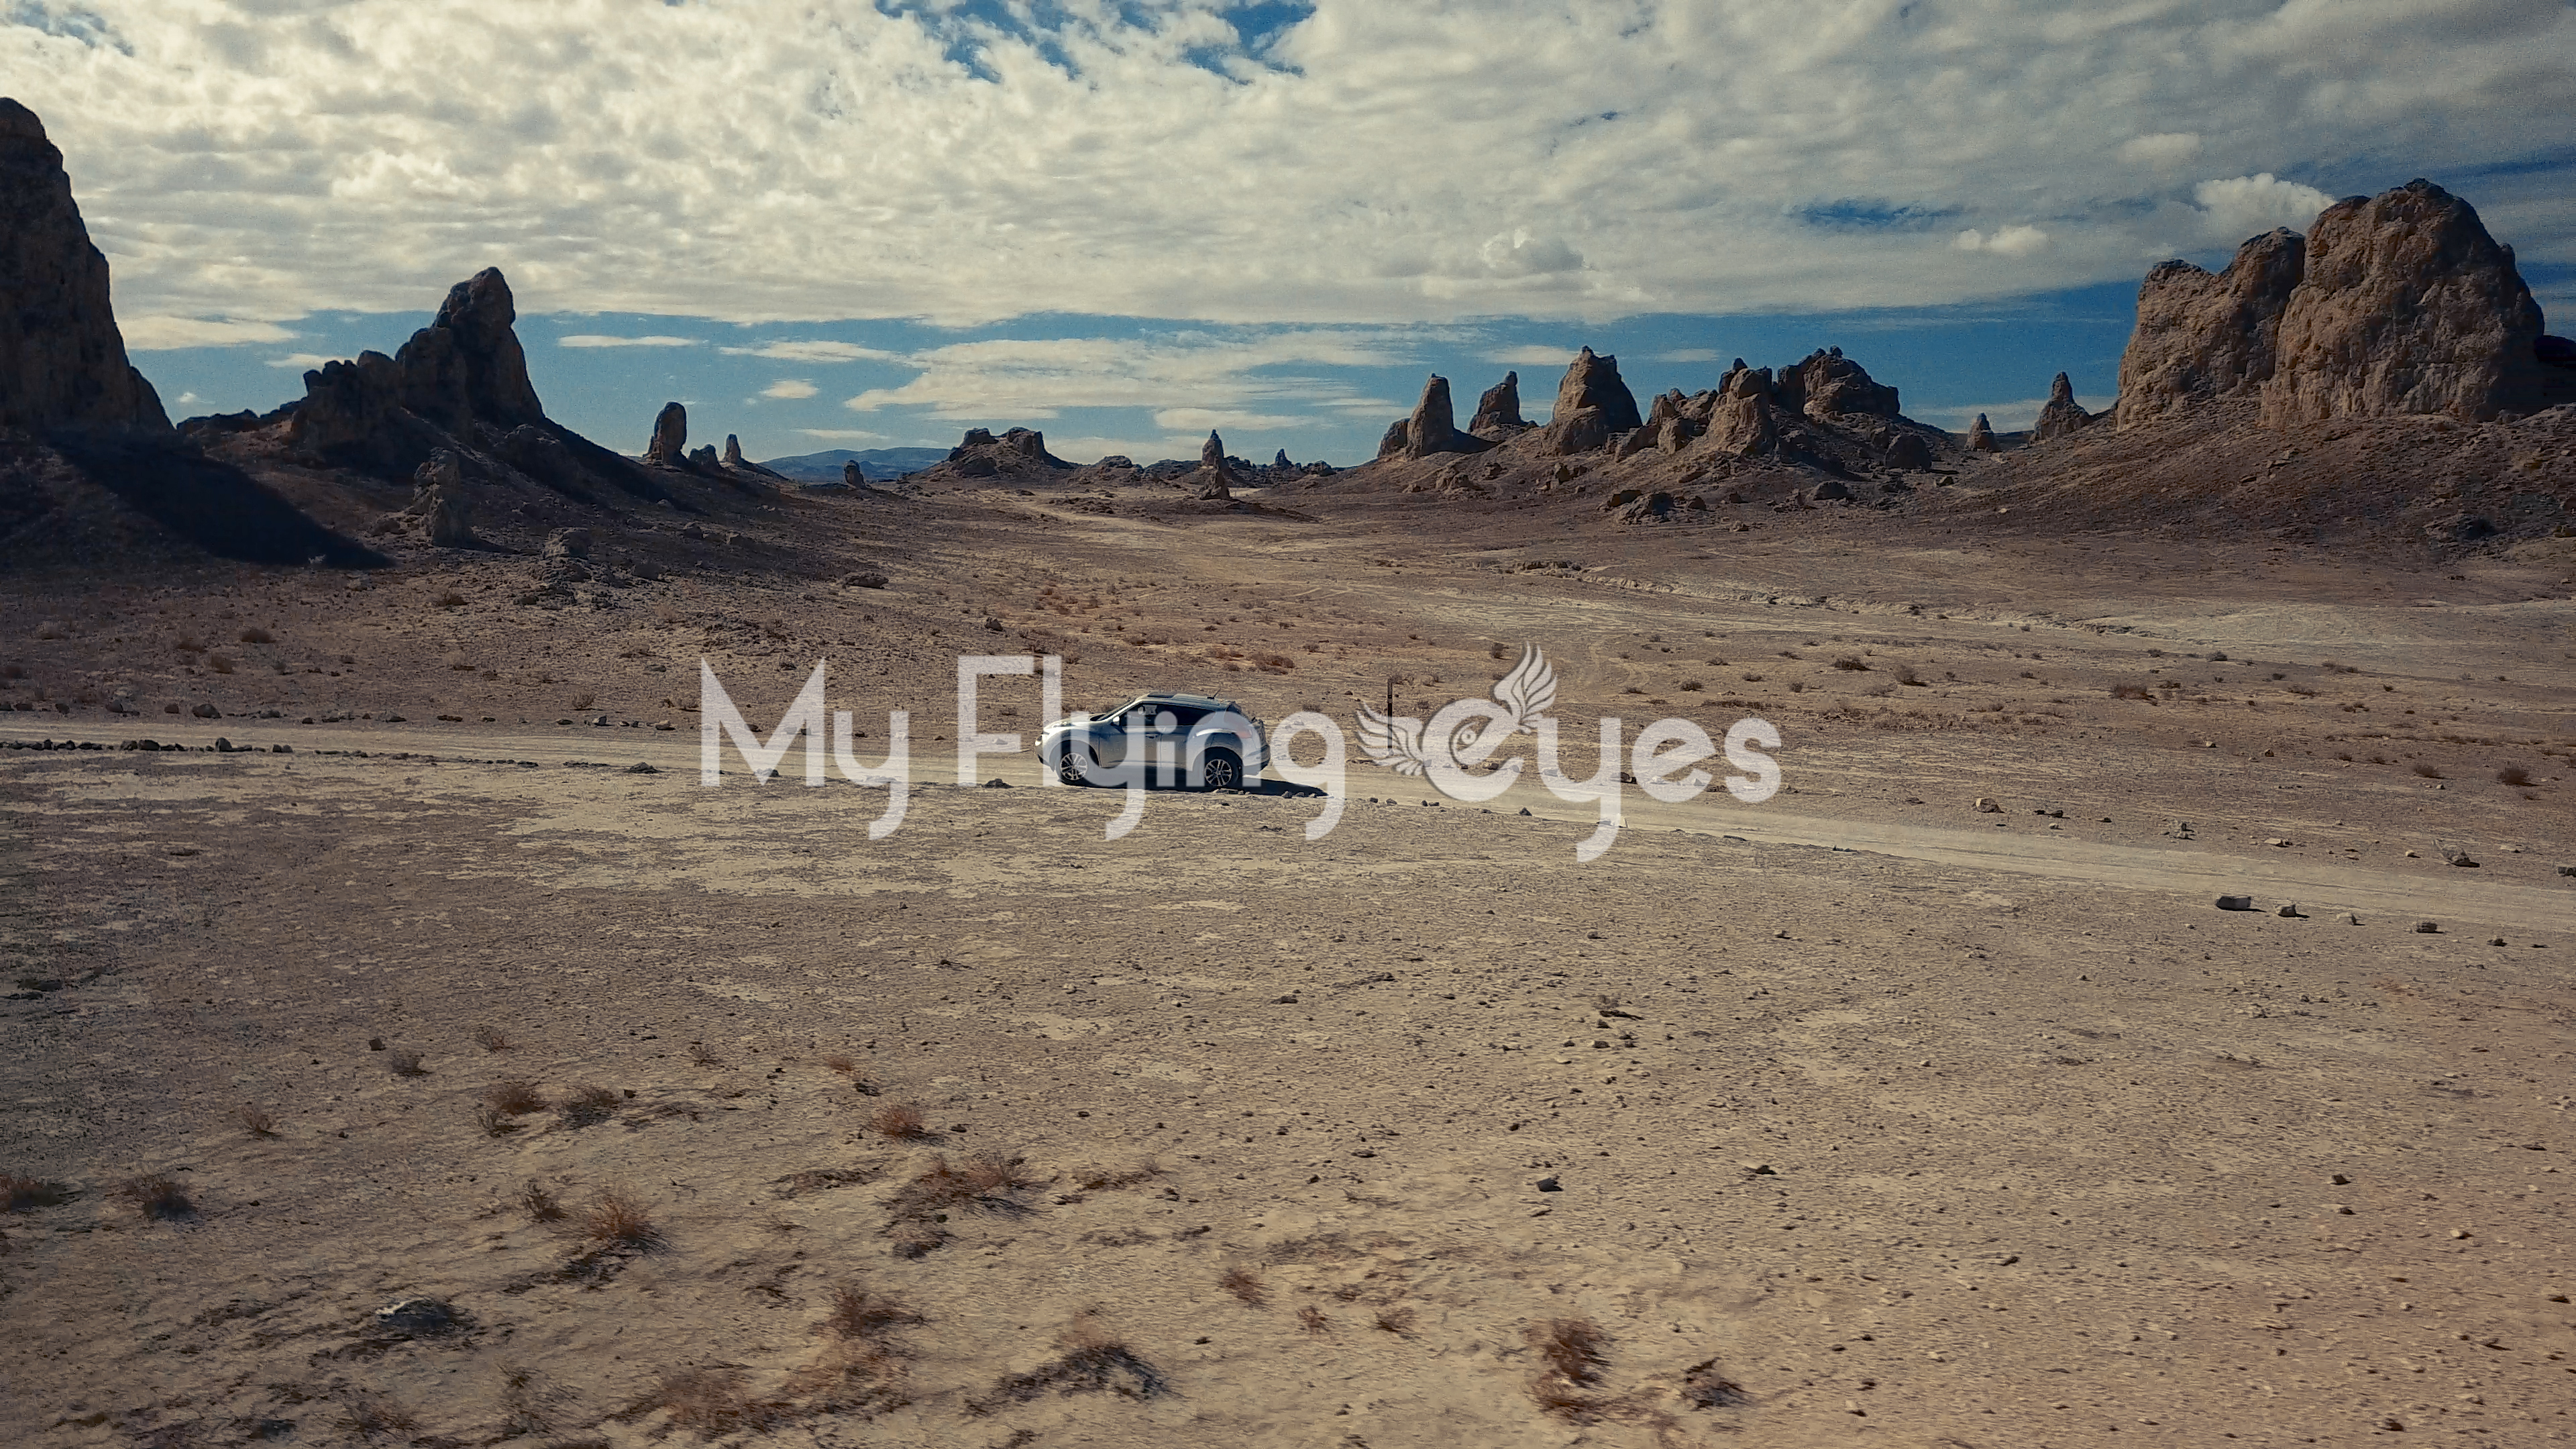 Car Driving Trough Desert Rock Formations Aerial Photography My Flying Eyes